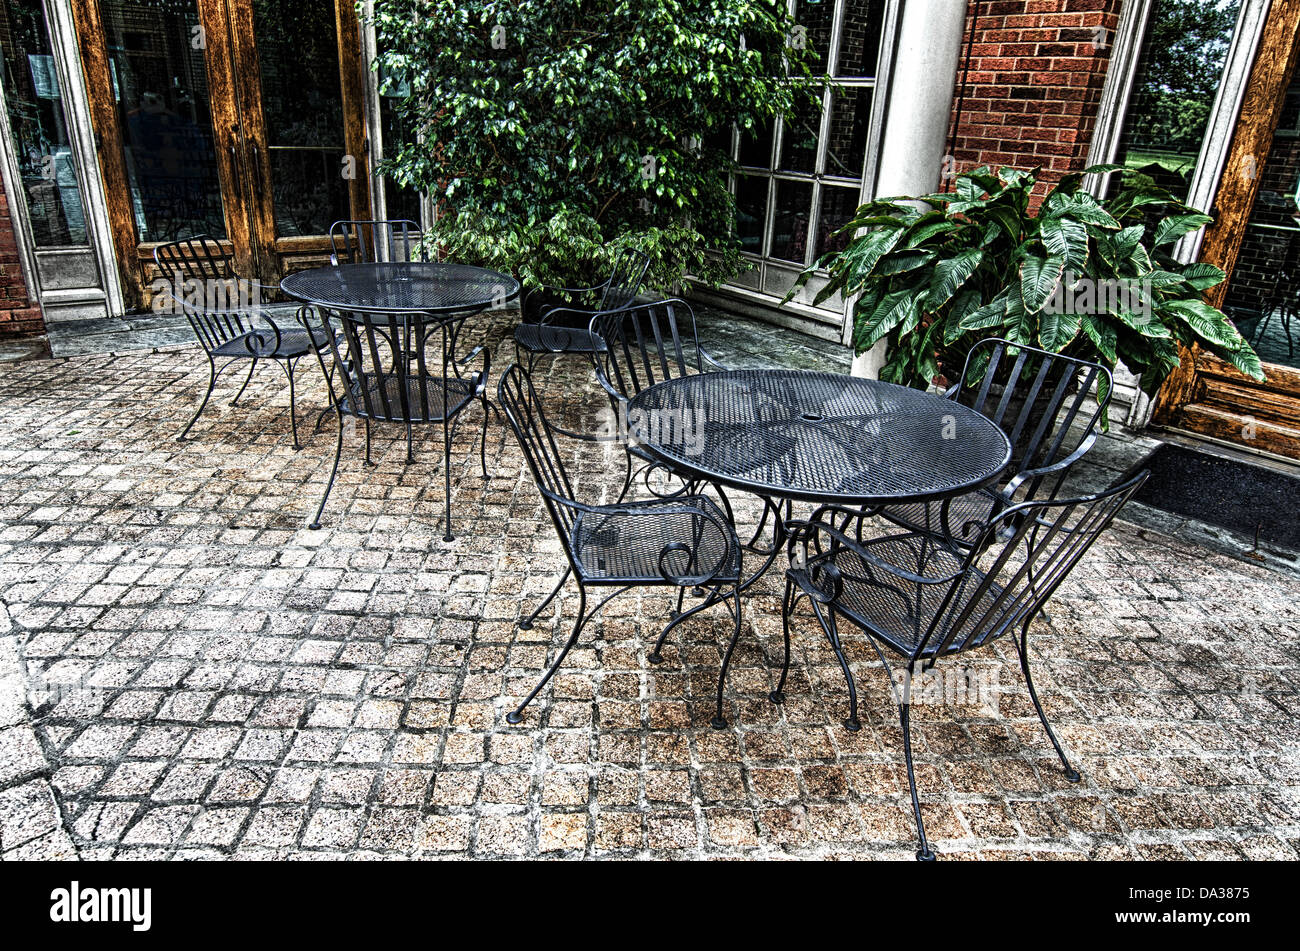 Wrought Iron Chairs Stock Photos Wrought Iron Chairs Stock Images